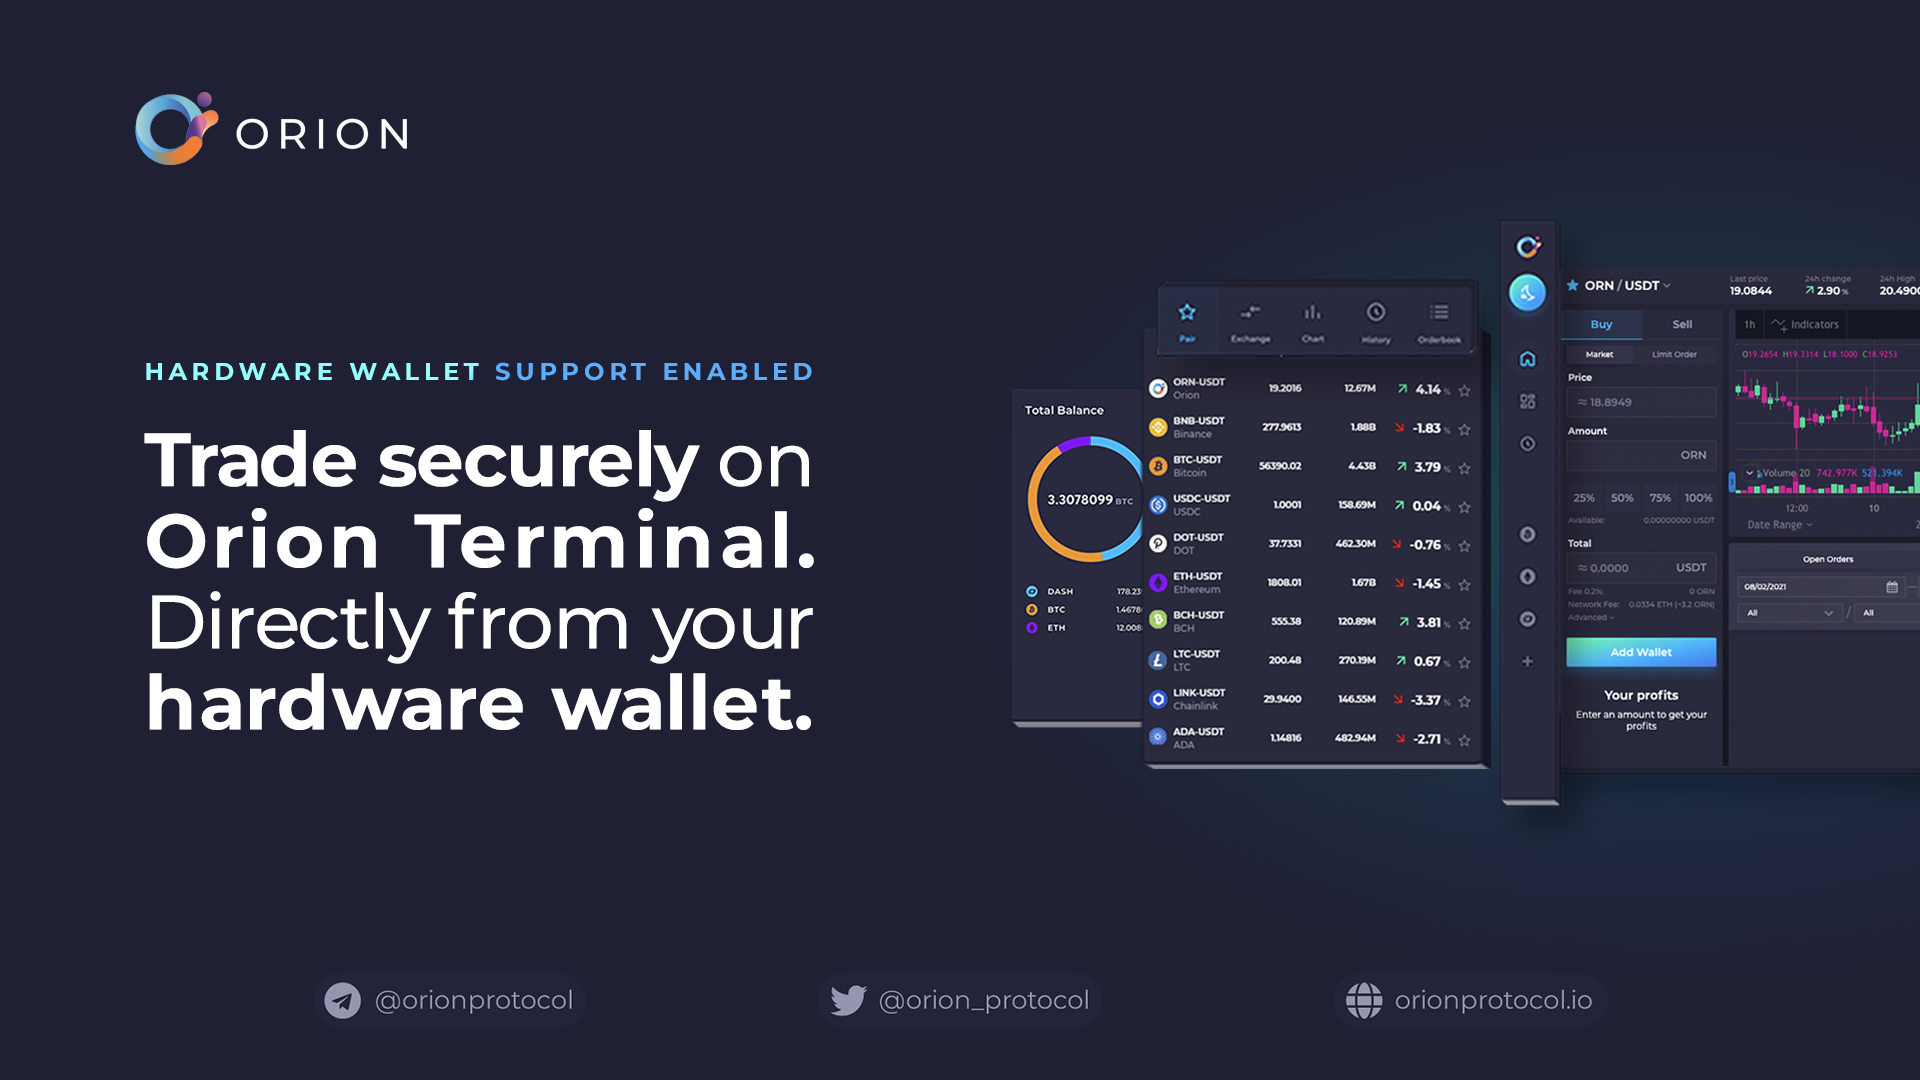 Orion Enables Hardware Wallet Support